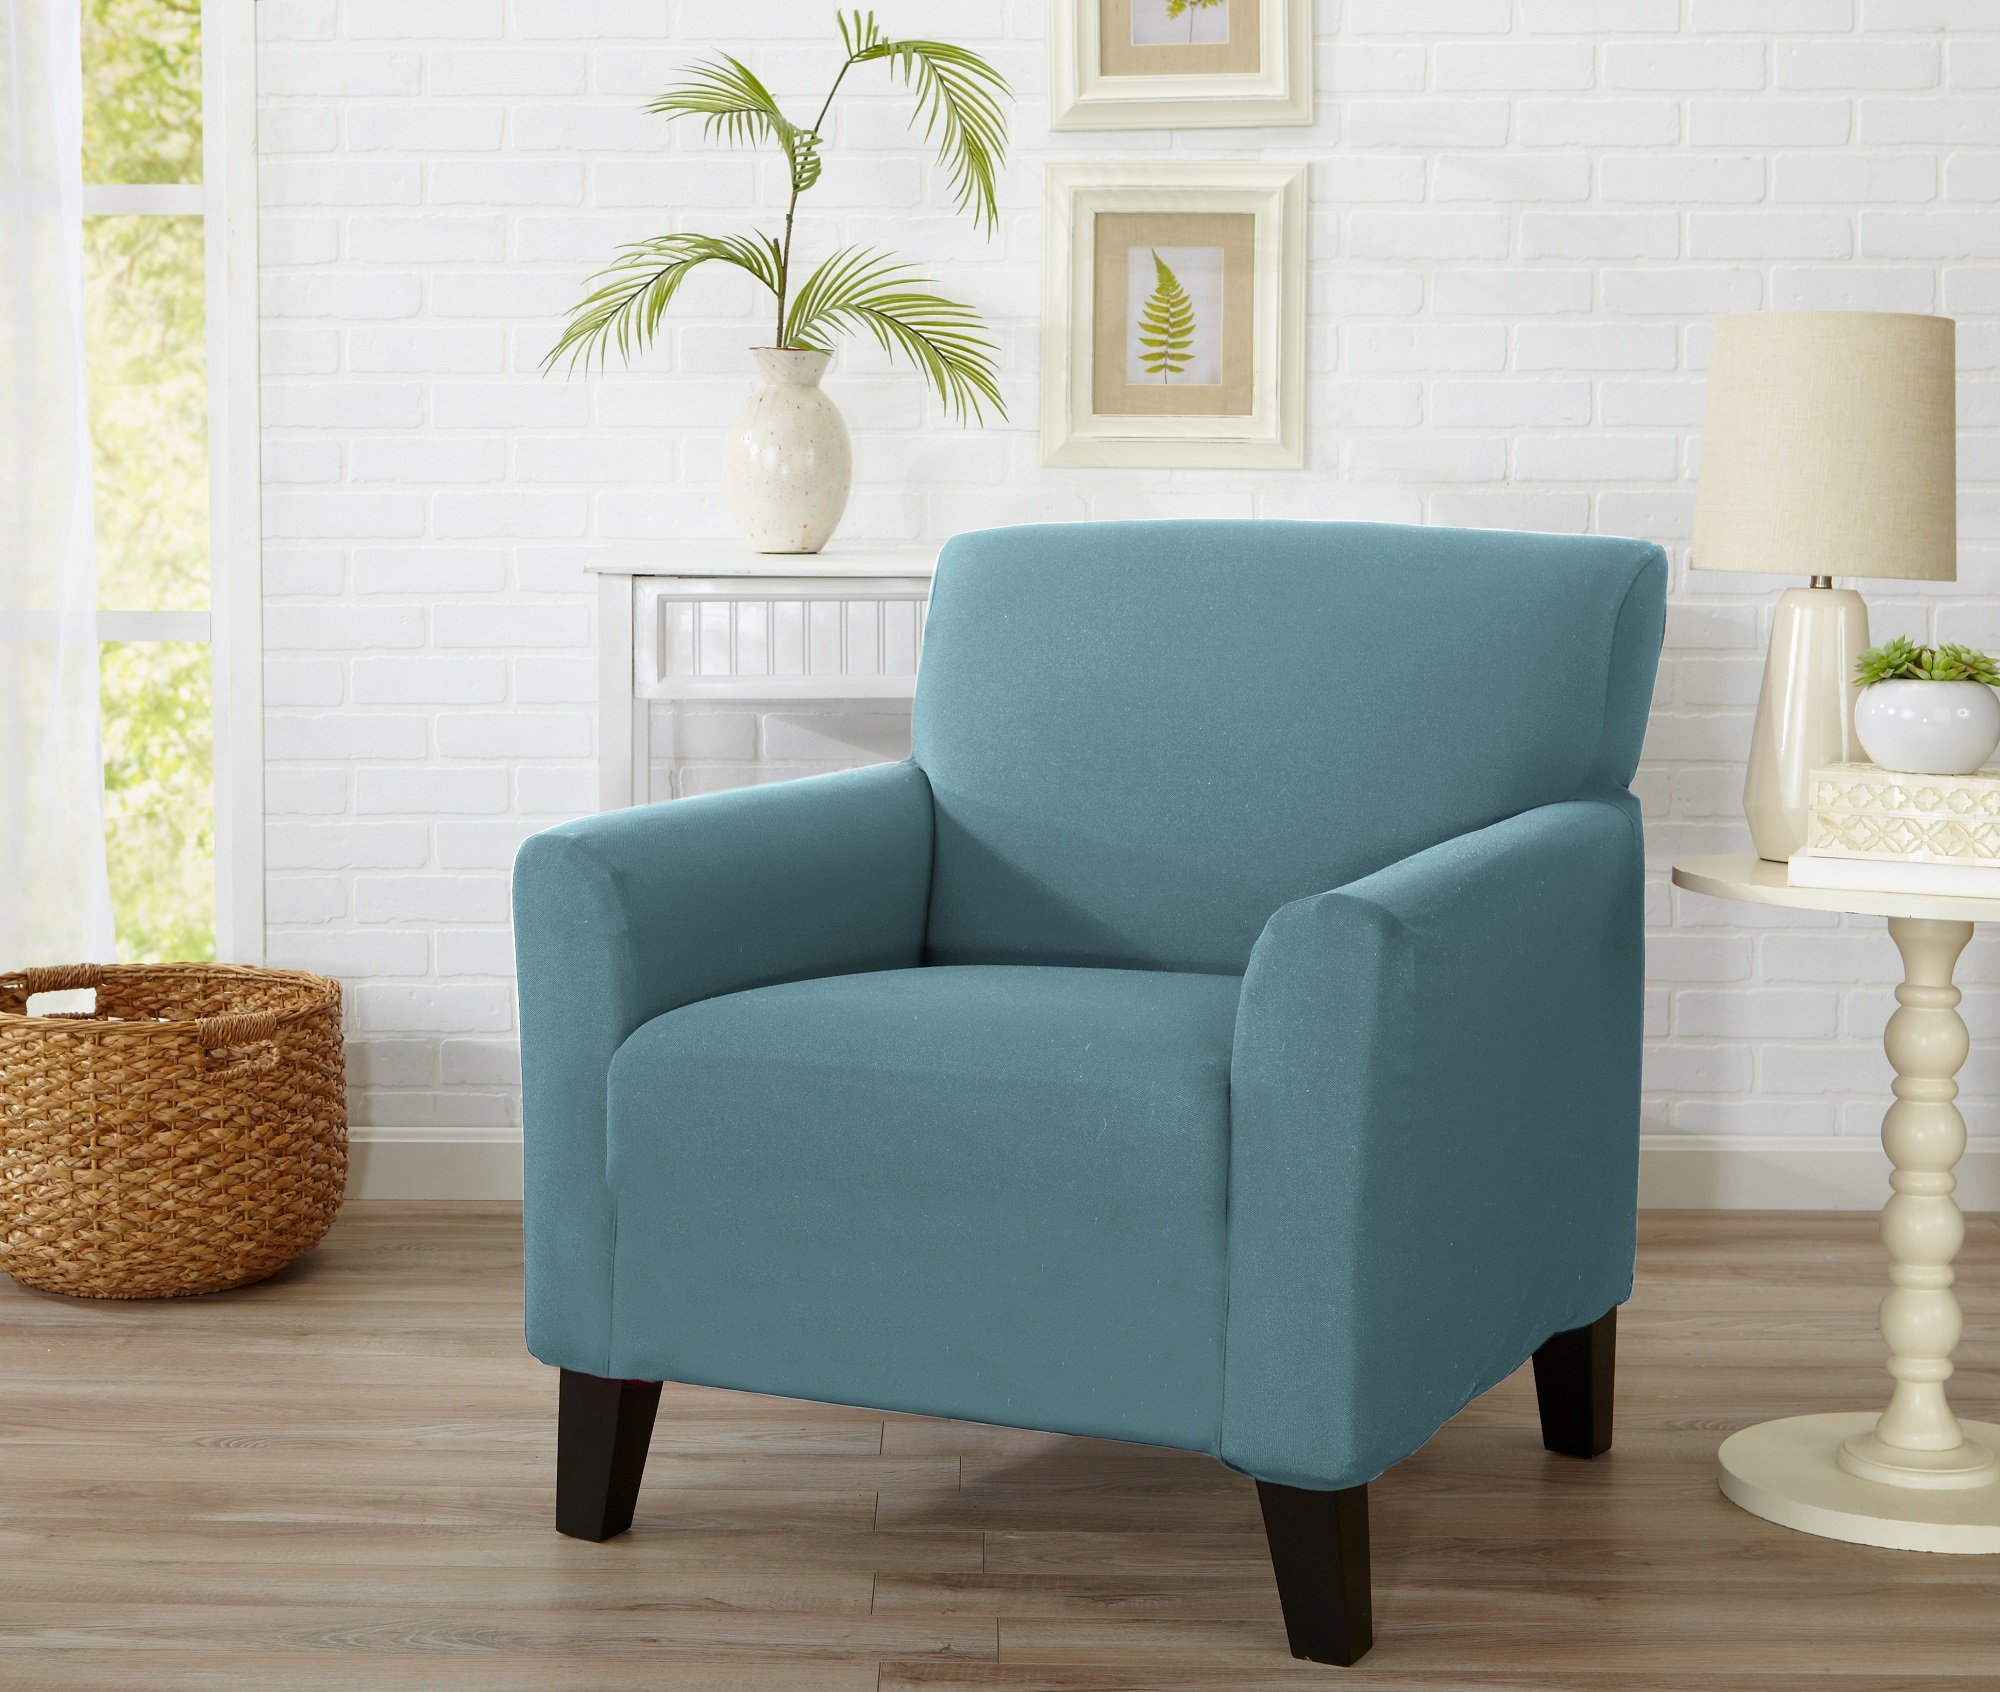 Home Fashion Designs Form Fit, Slip Resistant, Stylish Furniture Cover/Protector Featuring Lightweight Stretch Twill Fabric. Brenna Collection Strapless Slipcover. By (Chair, Smoke Blue - Solid)